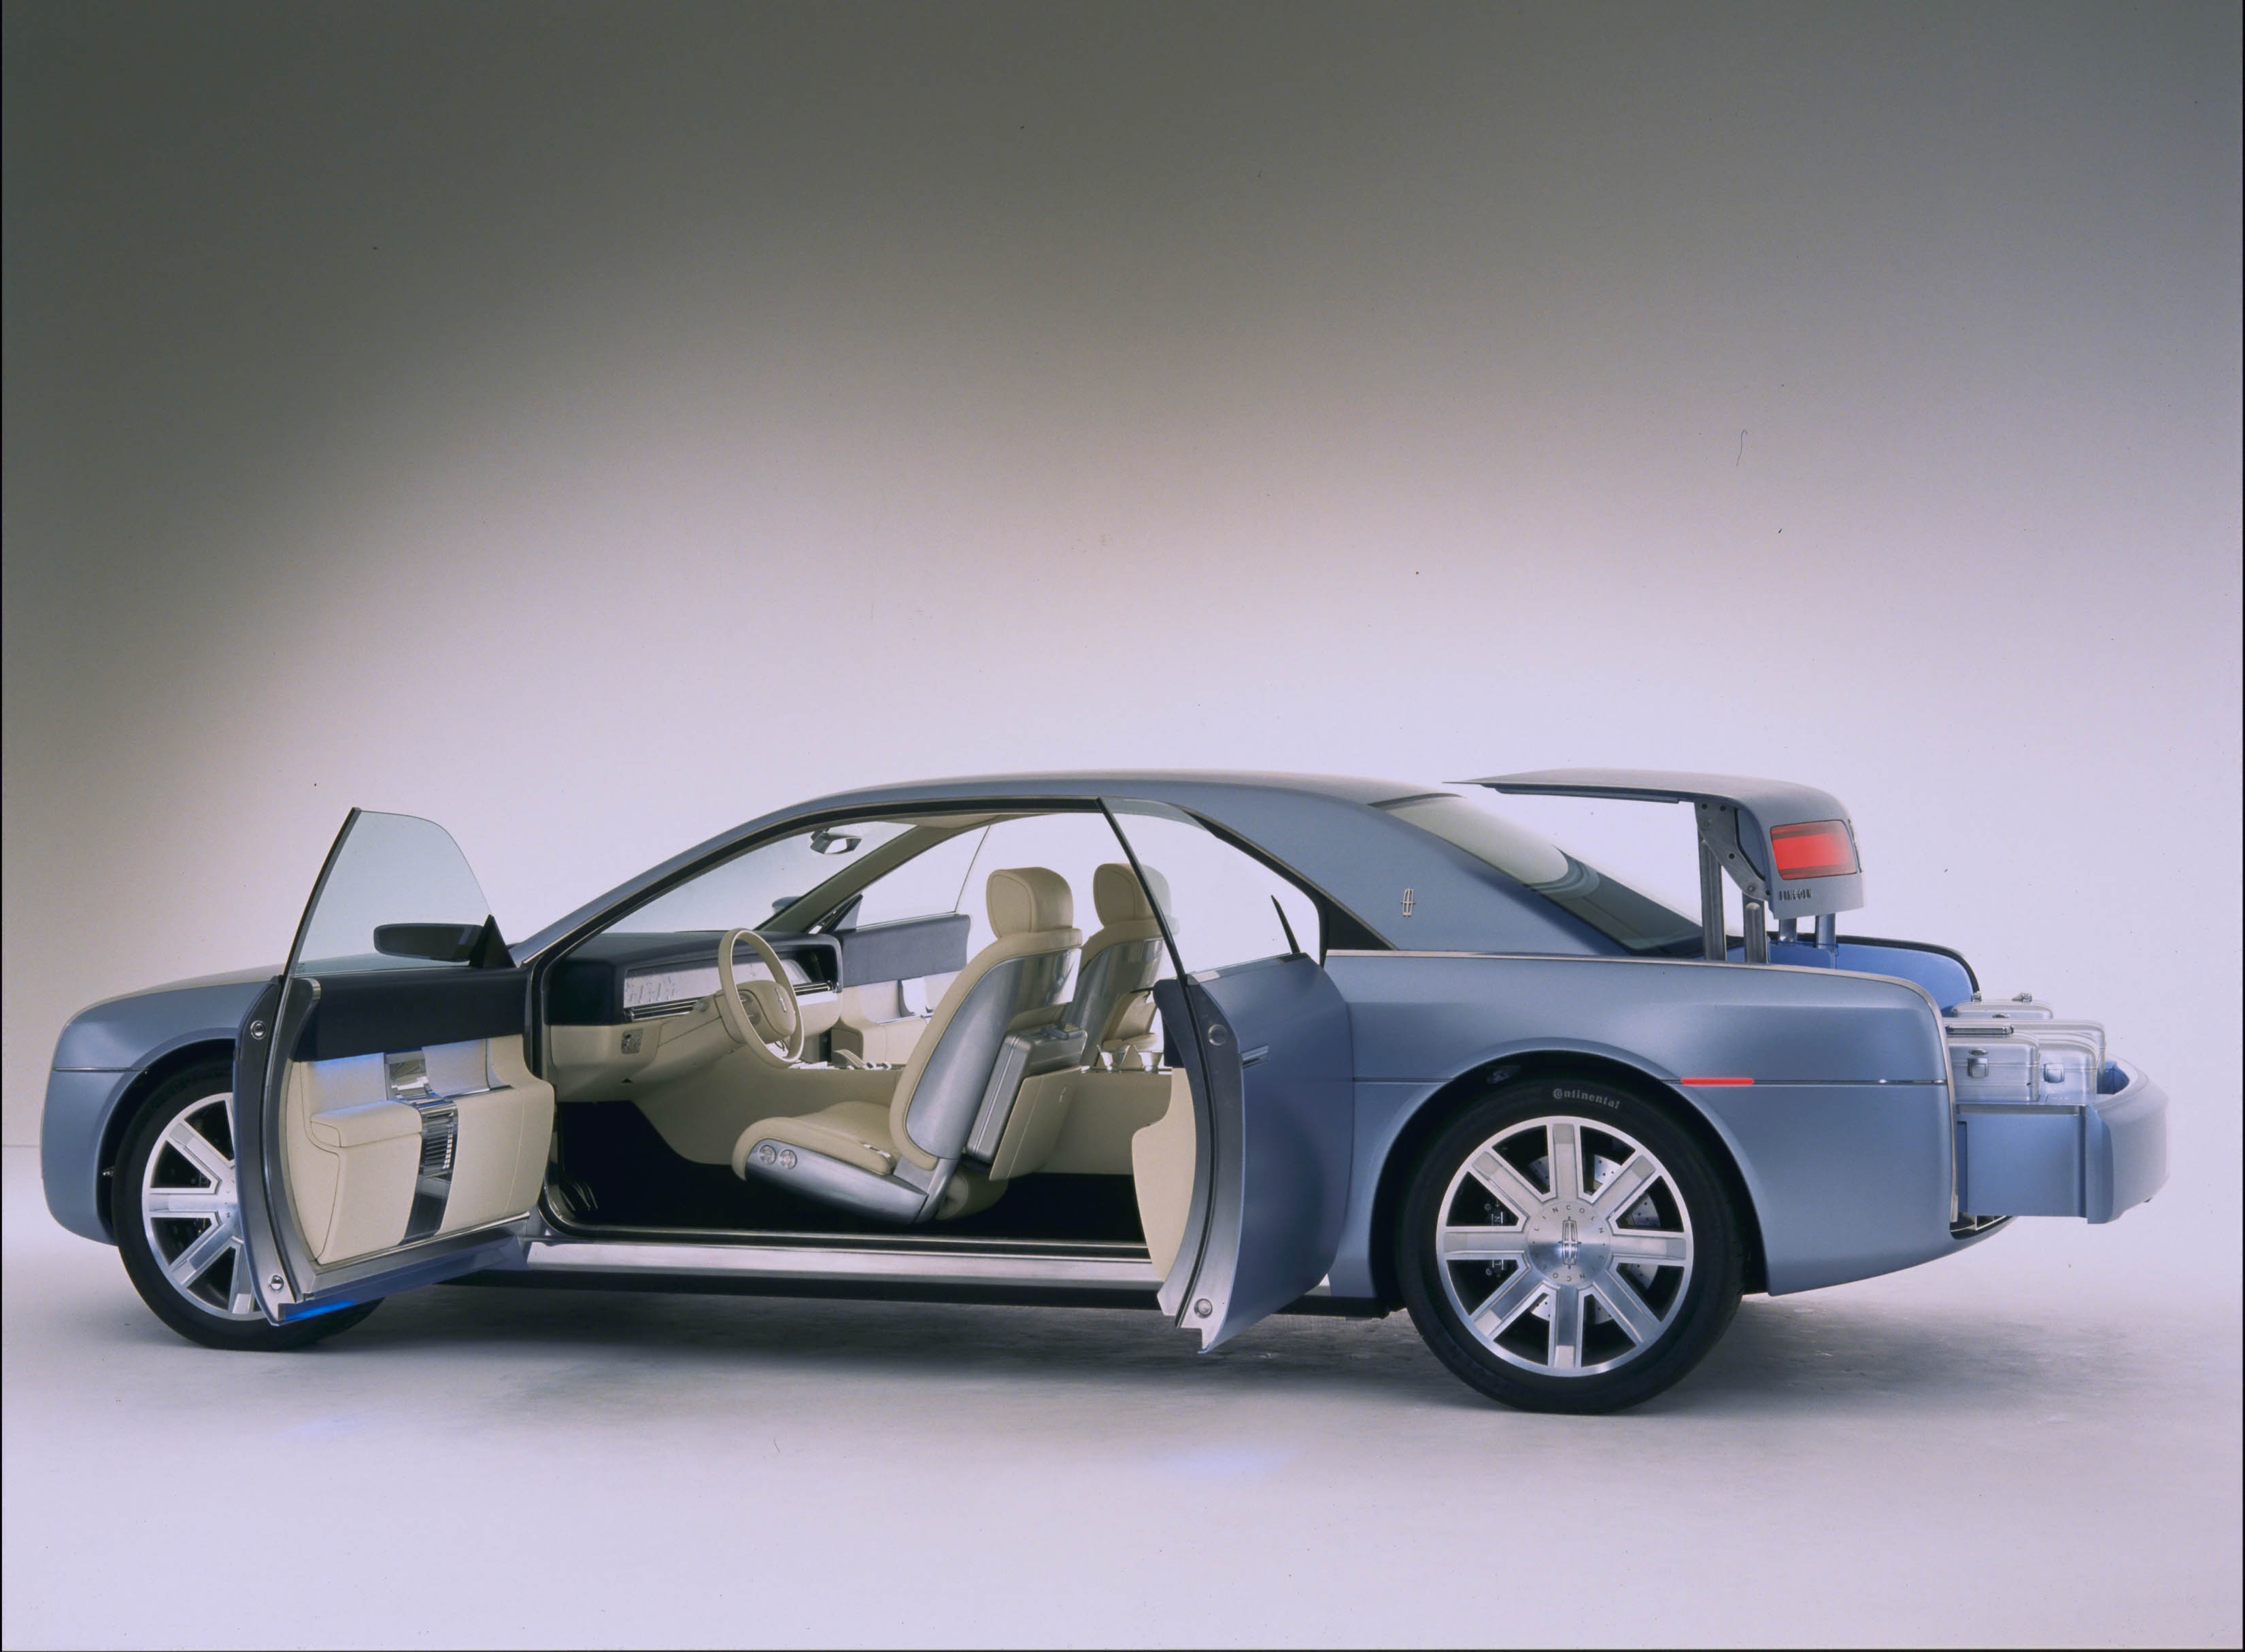 http://www.automobilesreview.com/img/lincoln-continental-concept/lincoln-continental-concept-08.jpg